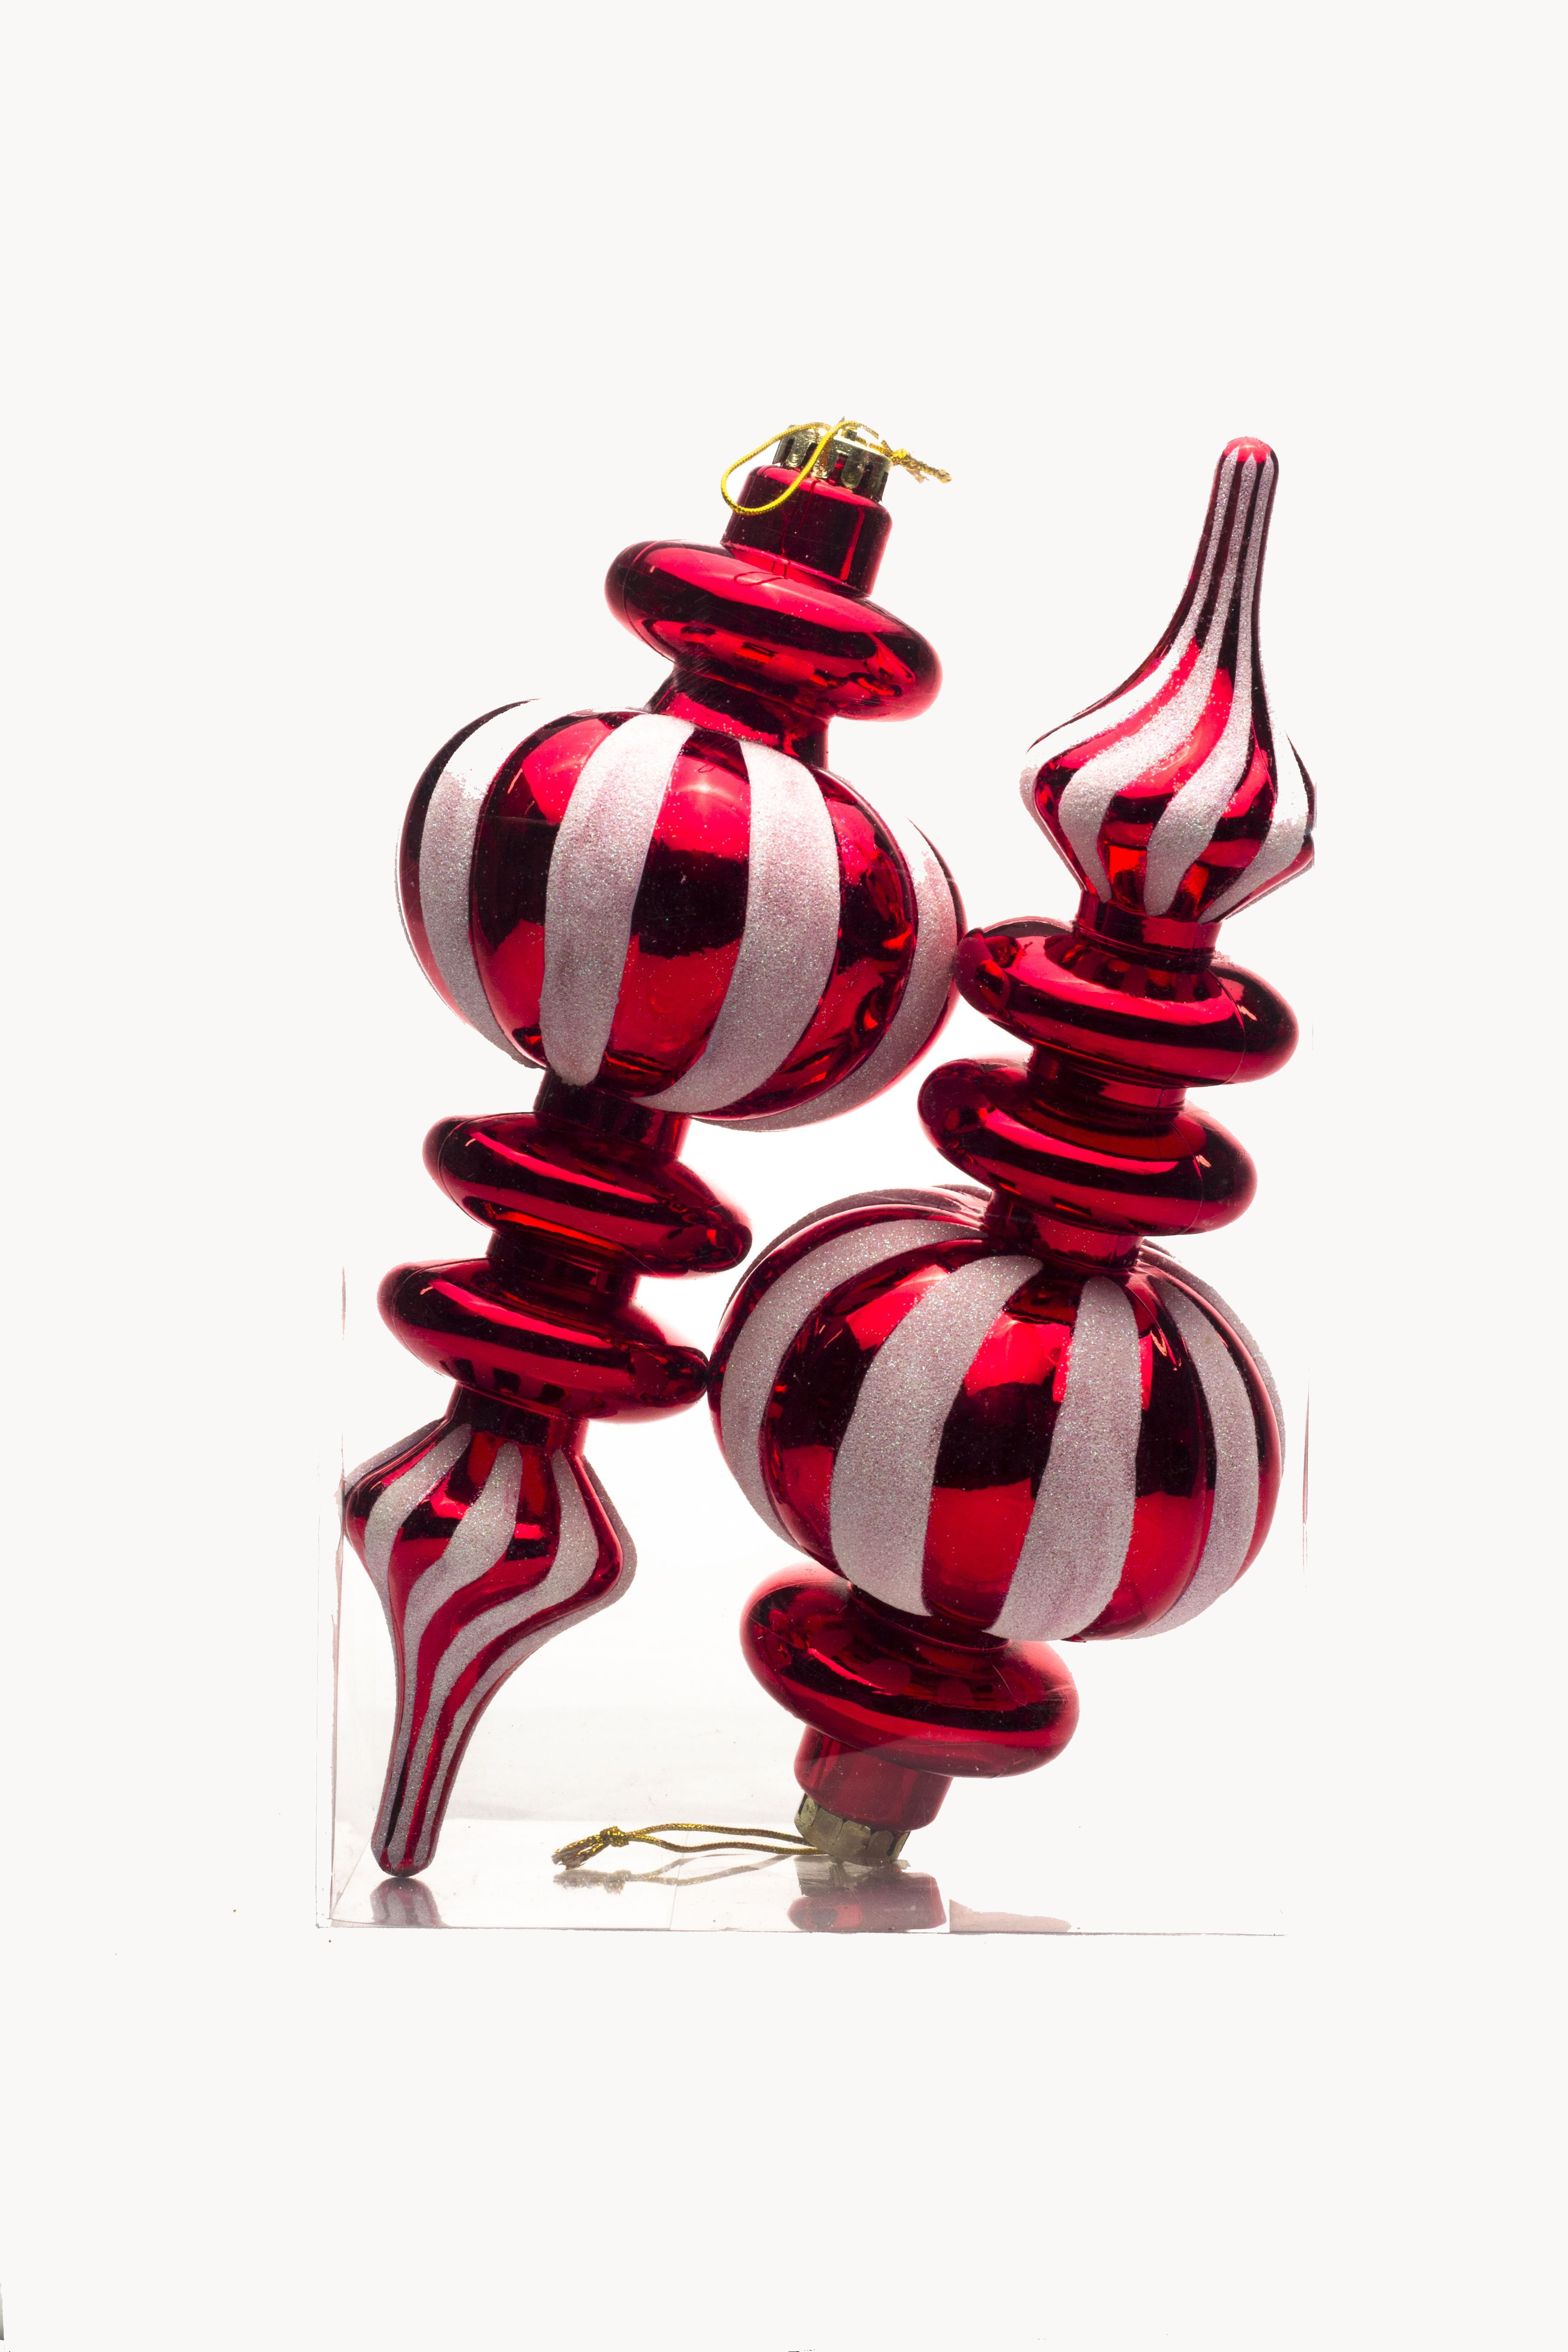 2pk Red Finial Ornament With White Glittered Stripes With Images Red Christmas Ornaments Candy Ornaments Christmas Ornaments